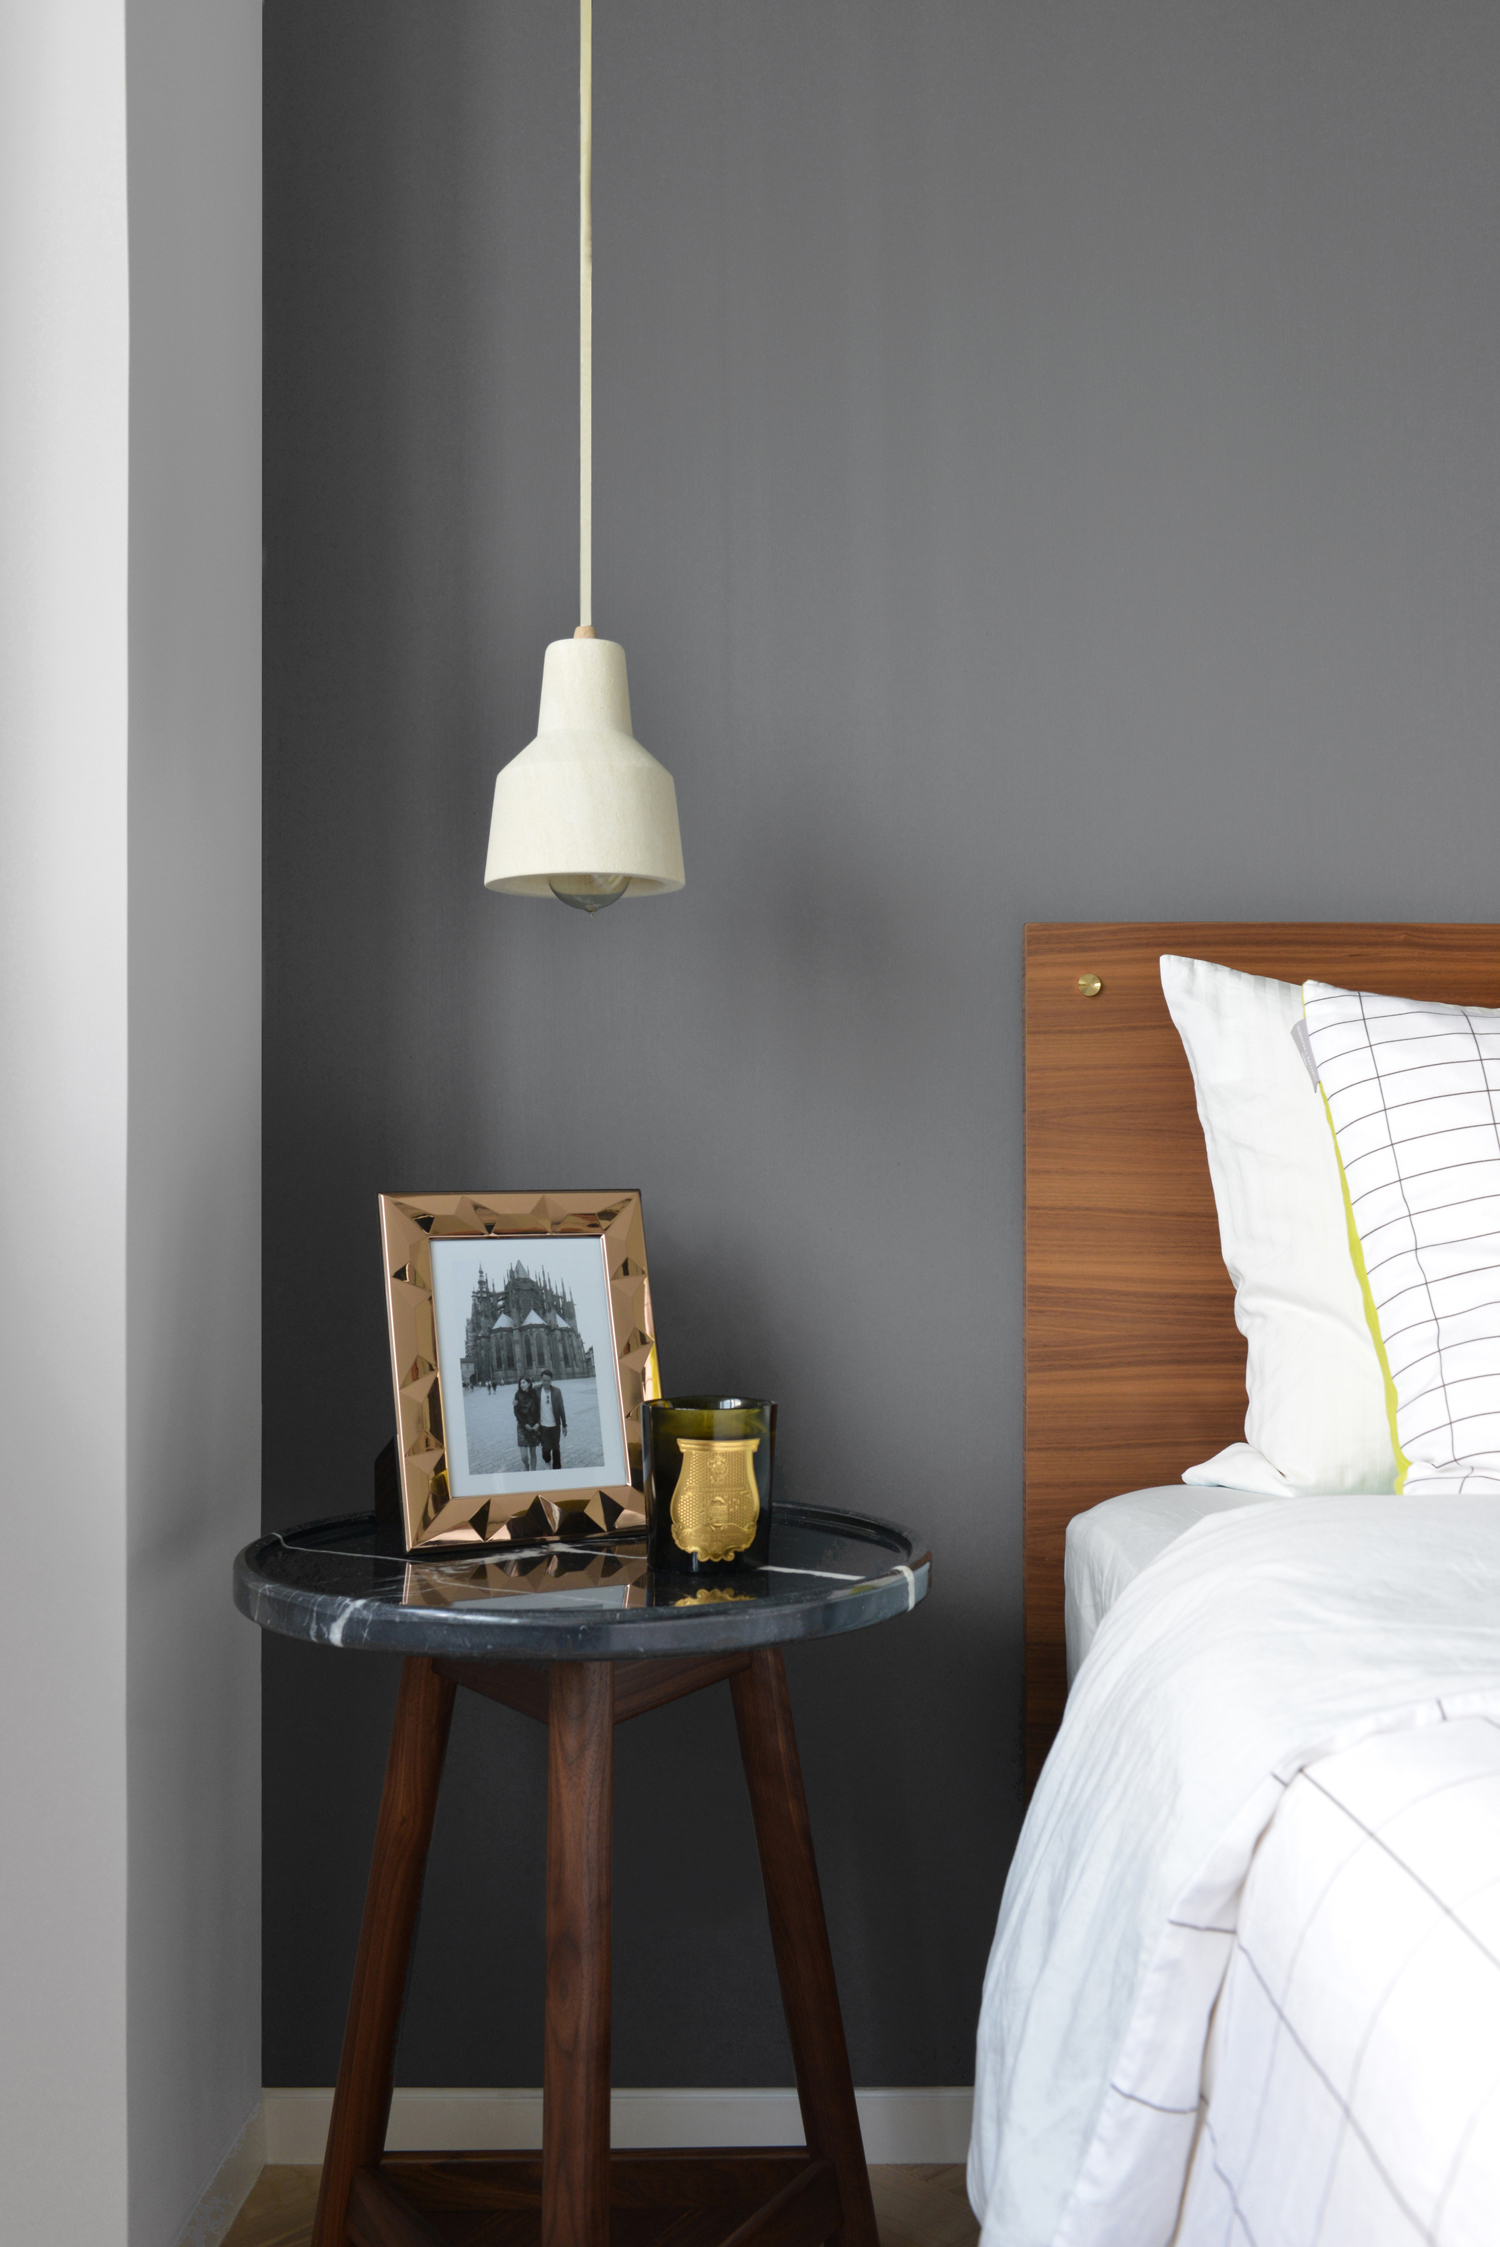 Master Suite Above And Below The Gray Turner Side Table HK9800 Came From Lane Crawford Pendant Lamp HK4000 Australian Lighting